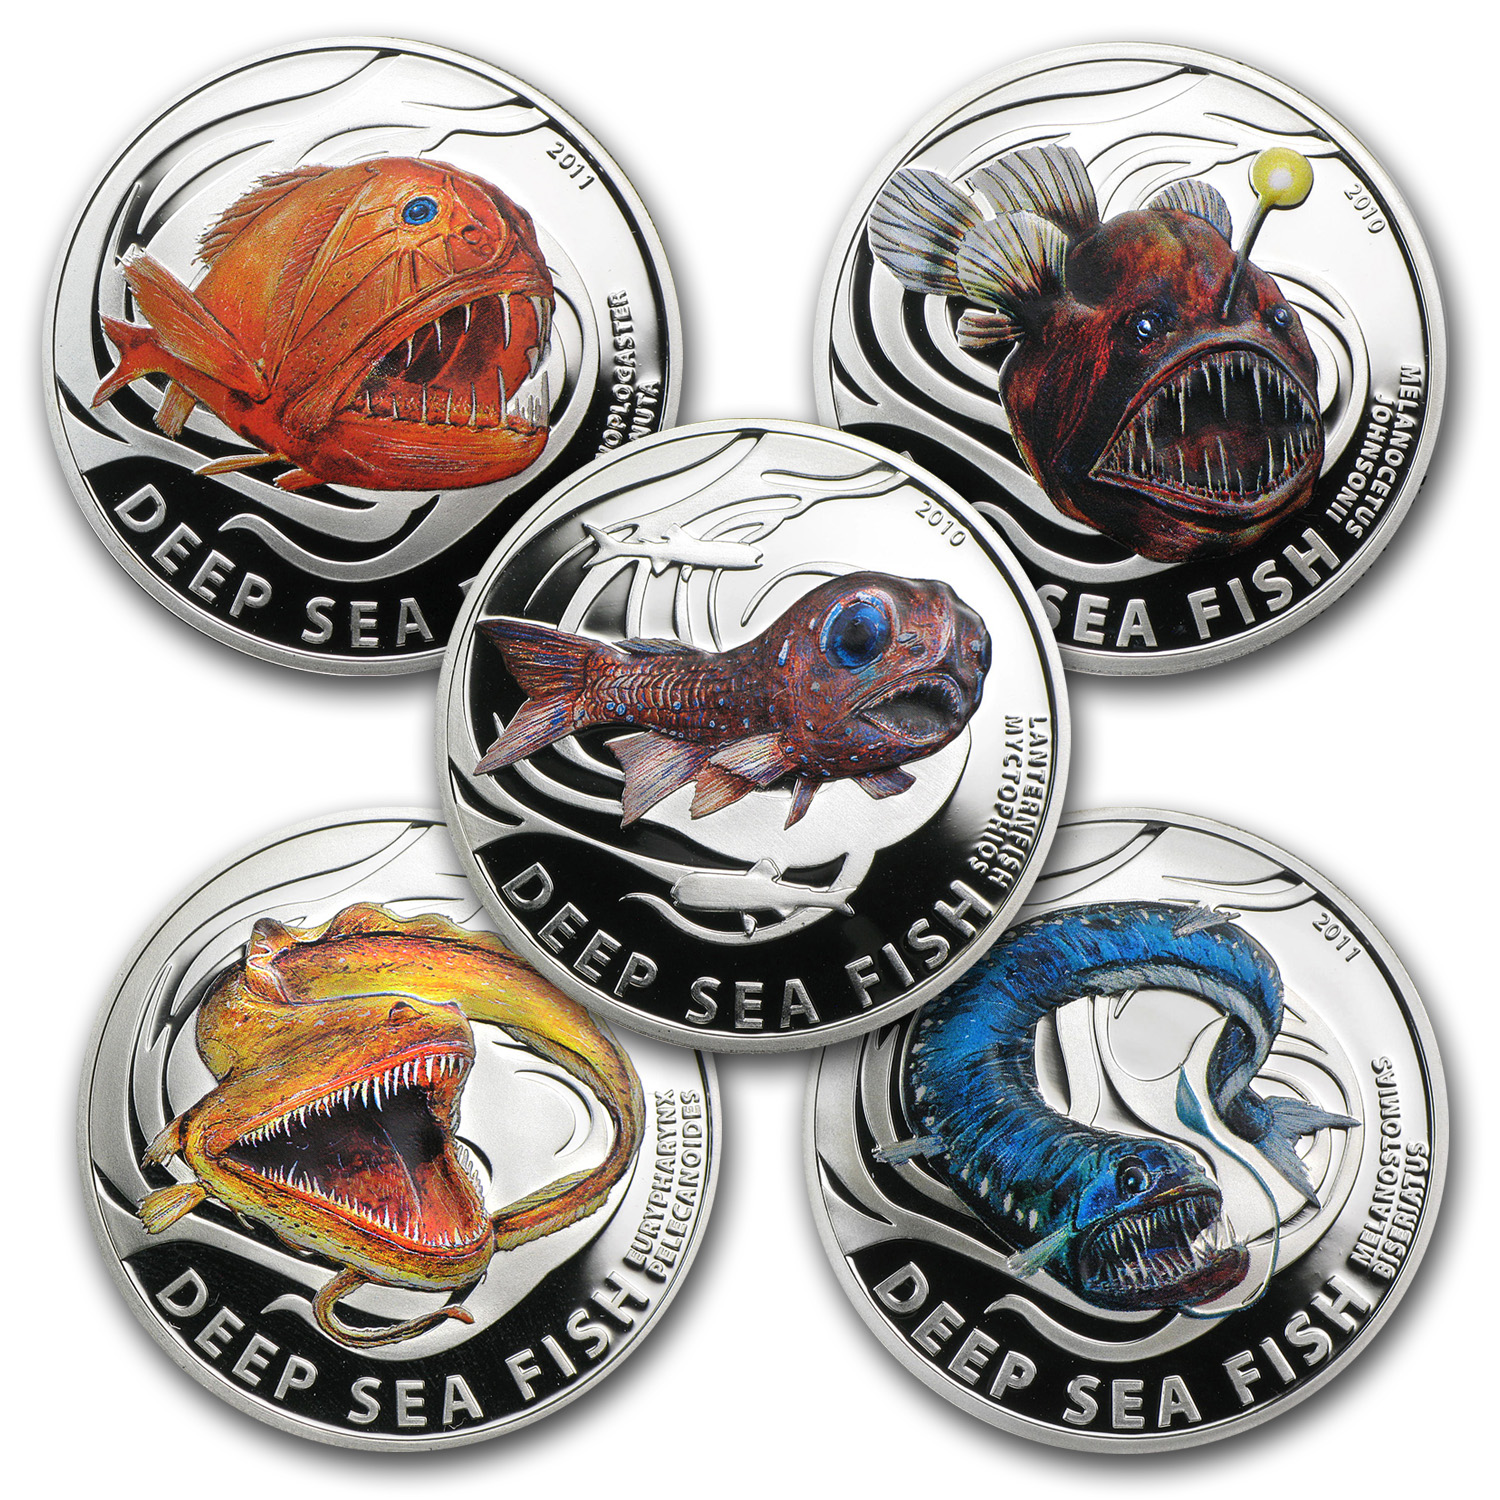 2011 Pitcairn Islands 5-Coin Silver Deep Sea Fish Proof Set